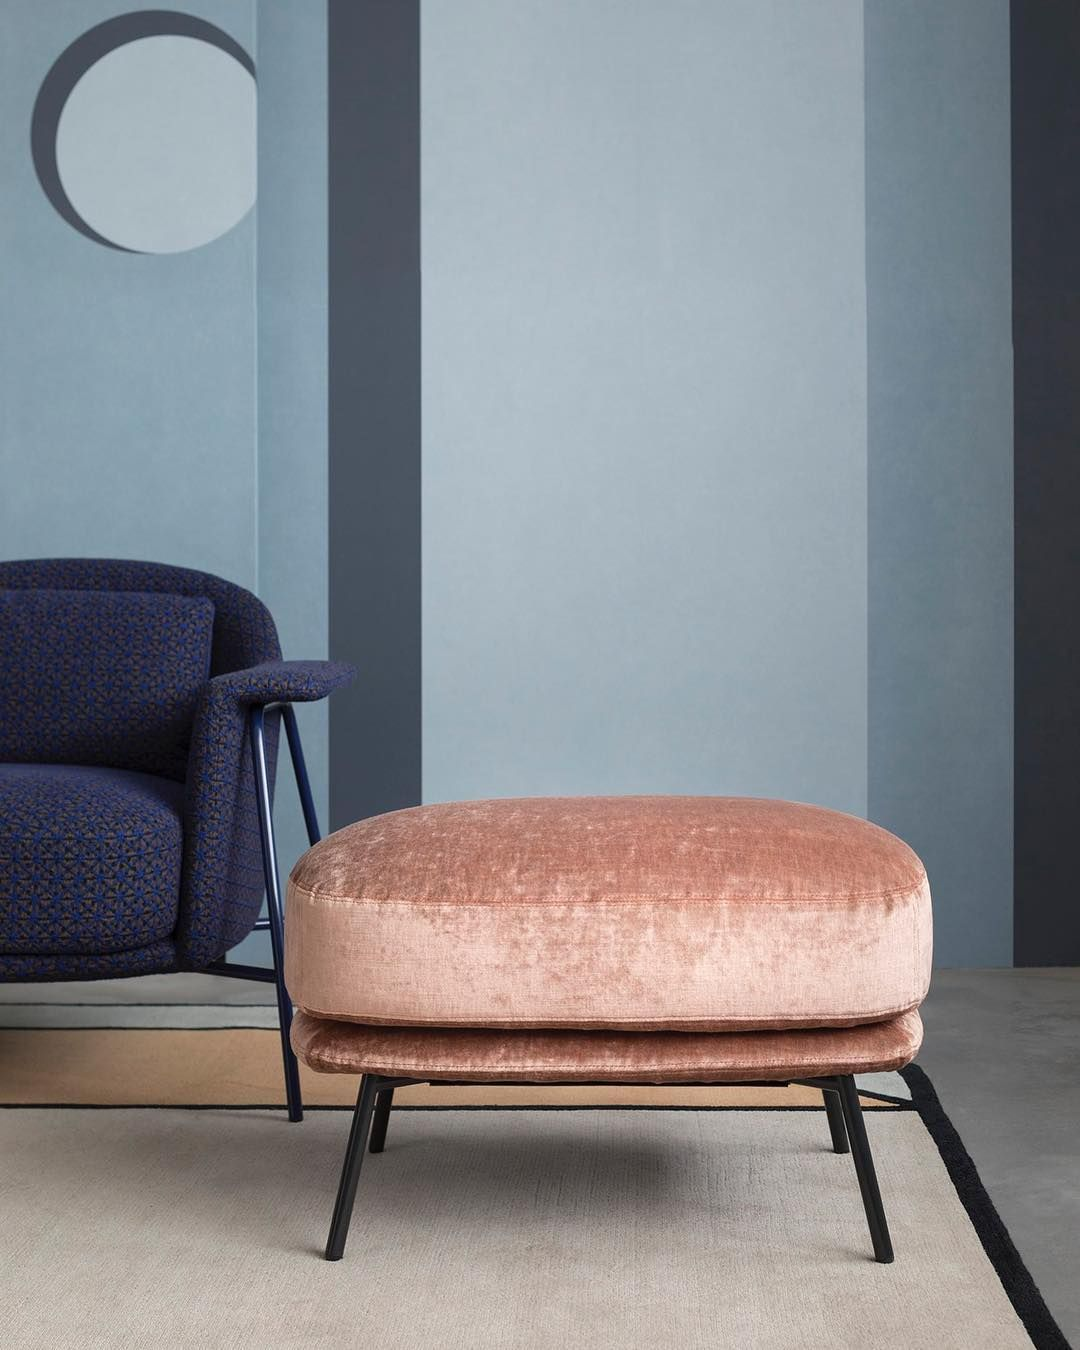 Kepi Collection By Emilio Nanni For Sabaitalia Features A Sober Design And Vaguely Italian Furniture Brands International Interior Design Milan Design Week